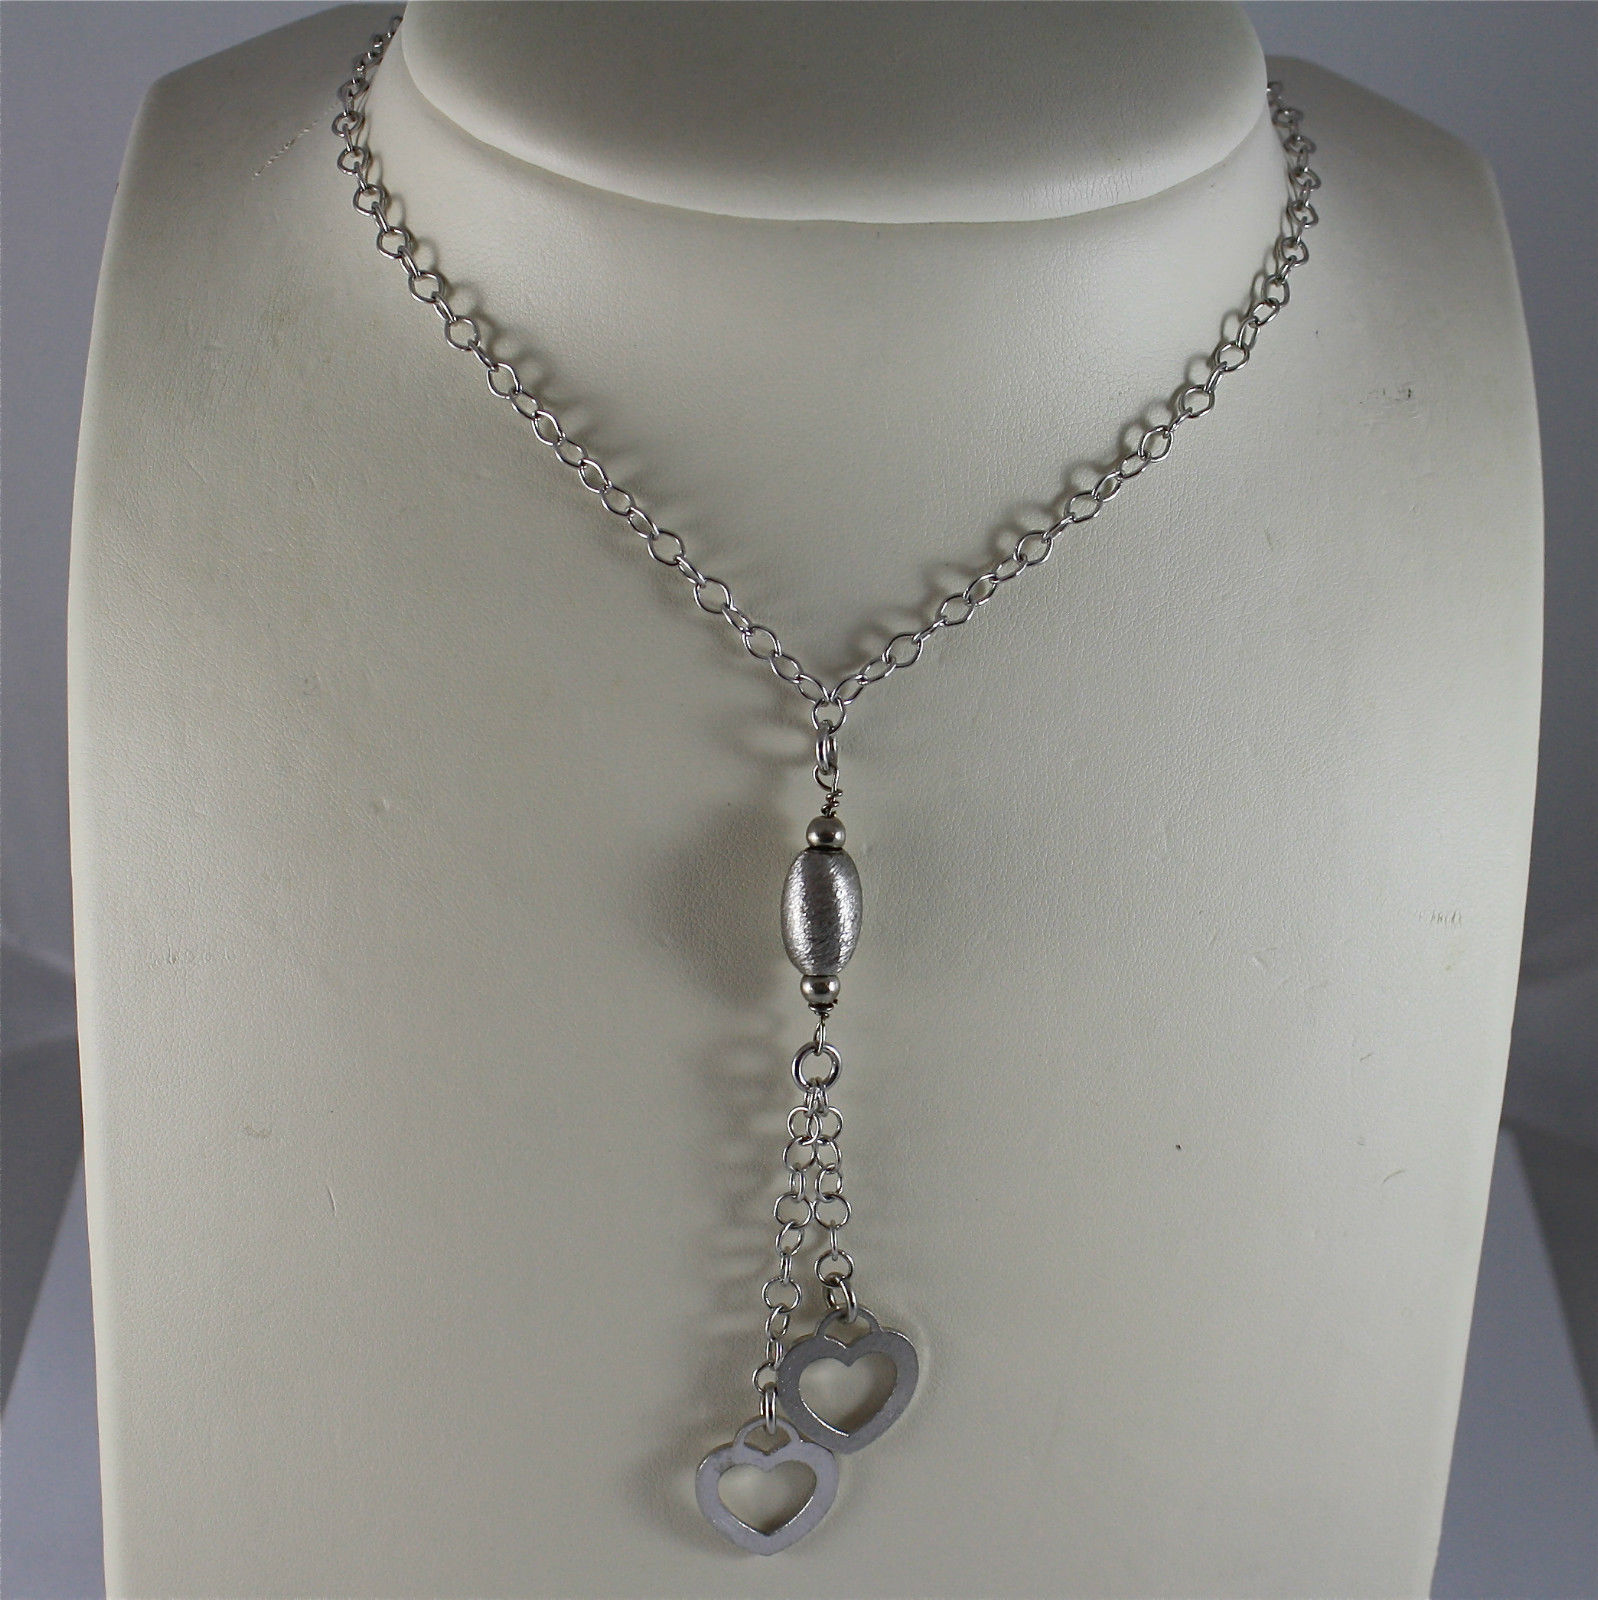 .925 RHODIUM SILVER NECKLACE, SCARF, ROUND MESH, SATIN OVAL CENTRAL, 2 HEARTS.